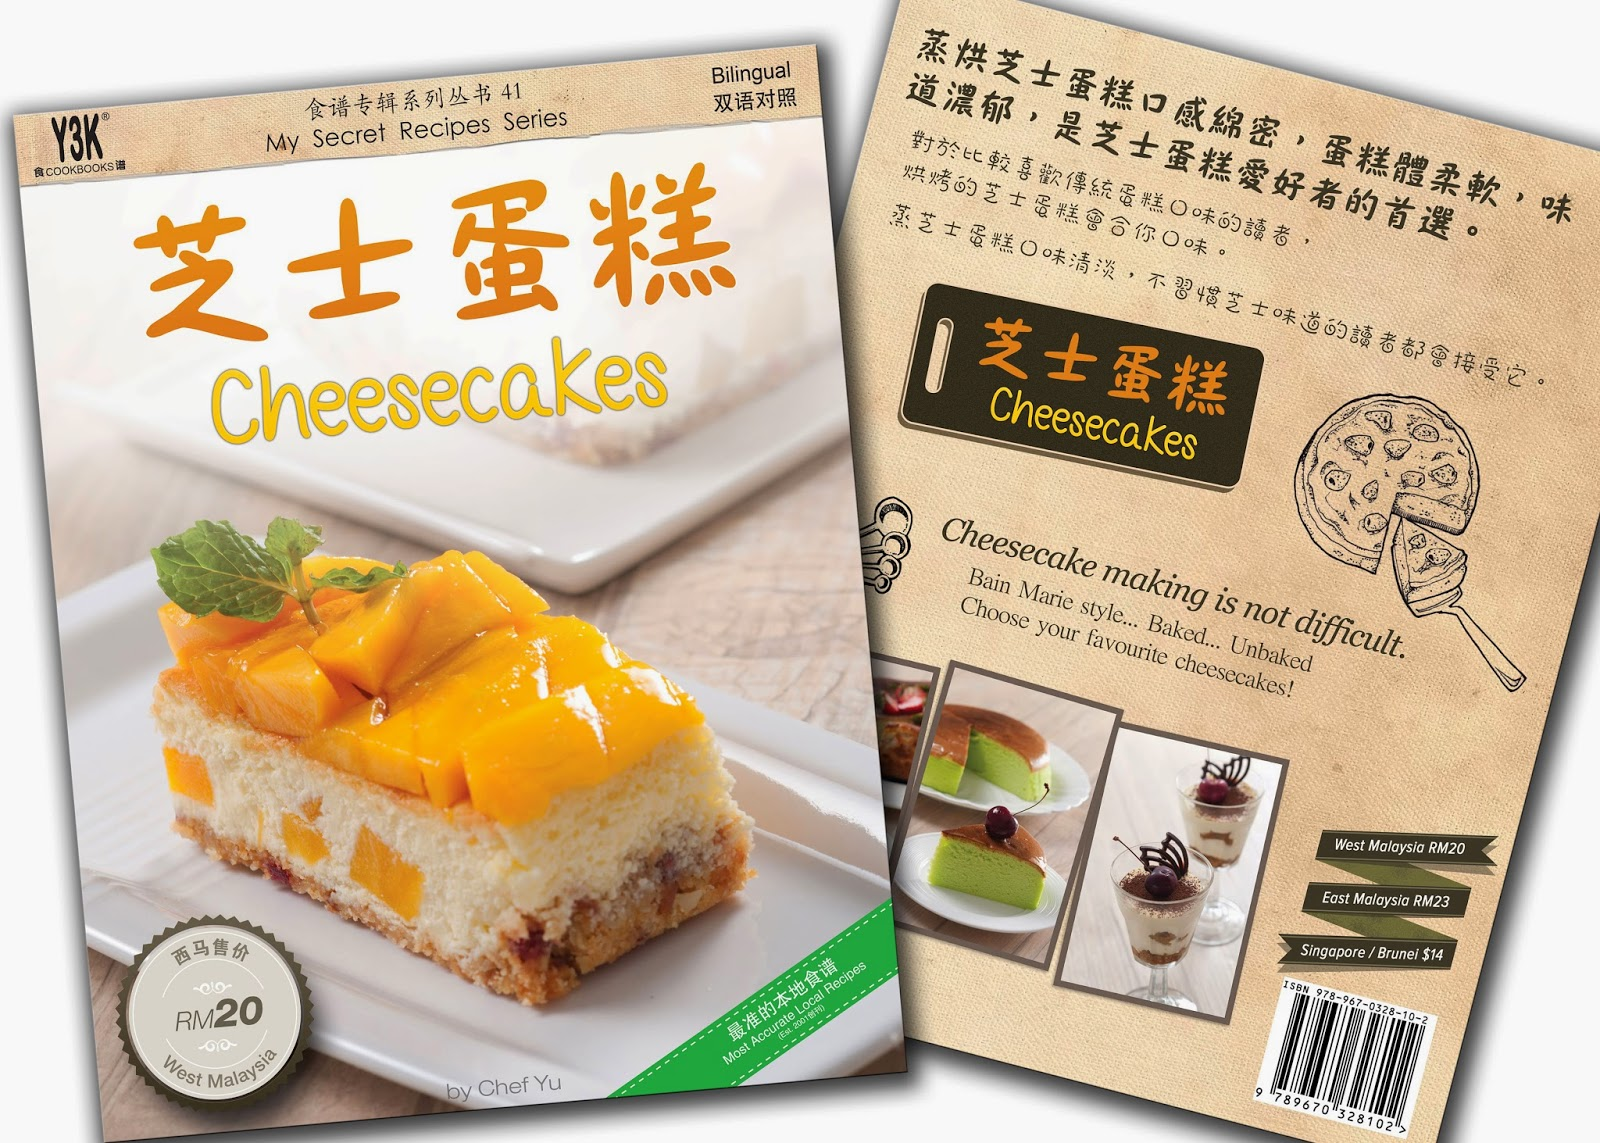 y3k cookbooks volume no.41 - cheesecakes